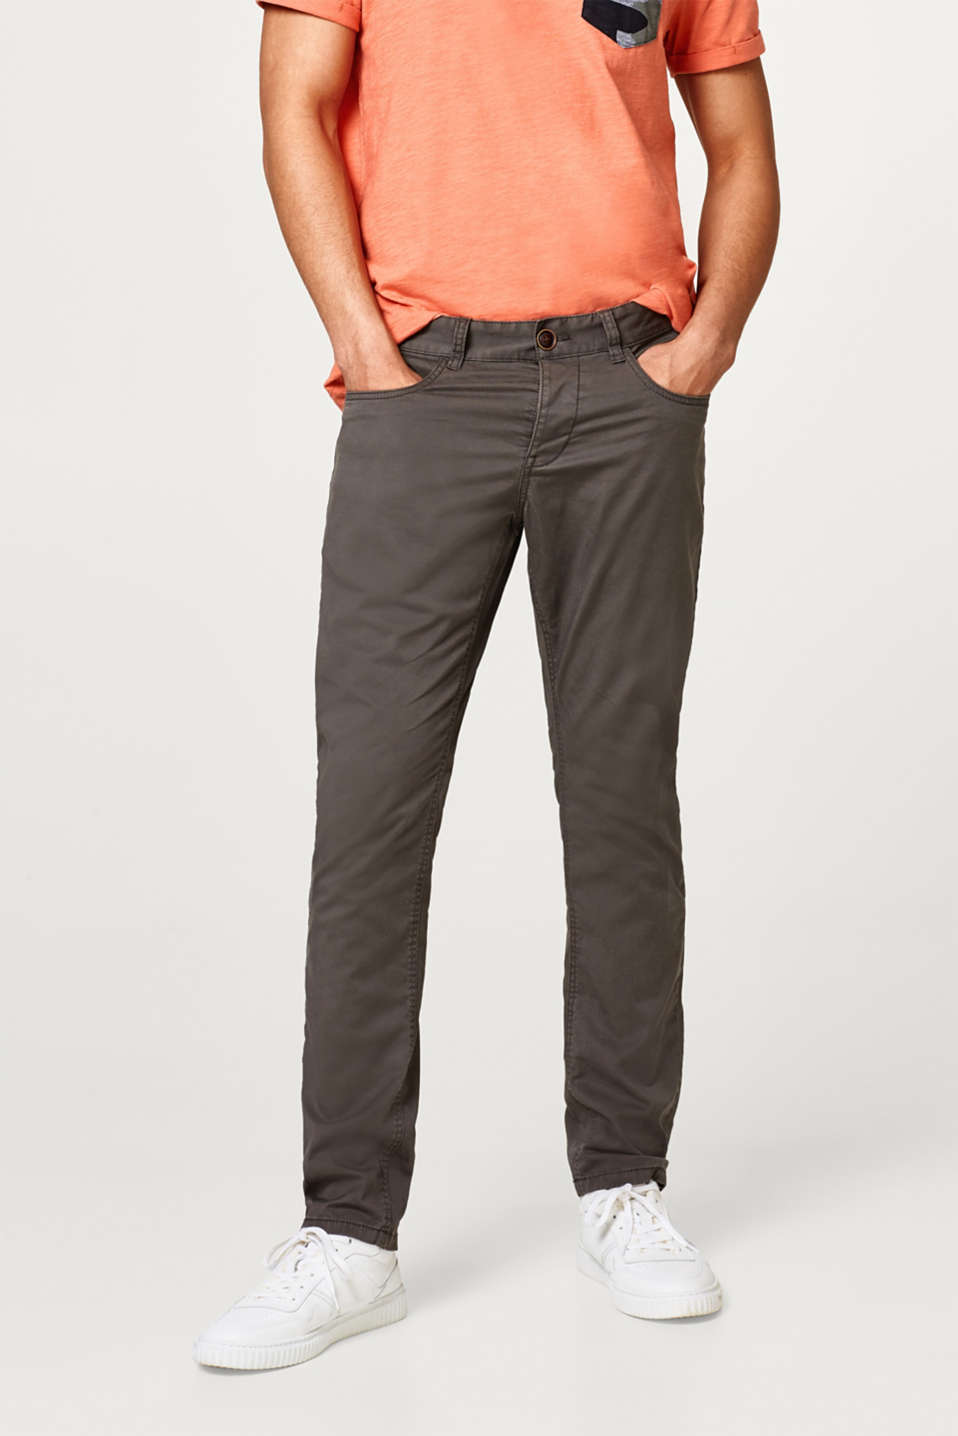 edc - Five-pocket trousers in cotton with added stretch for comfort